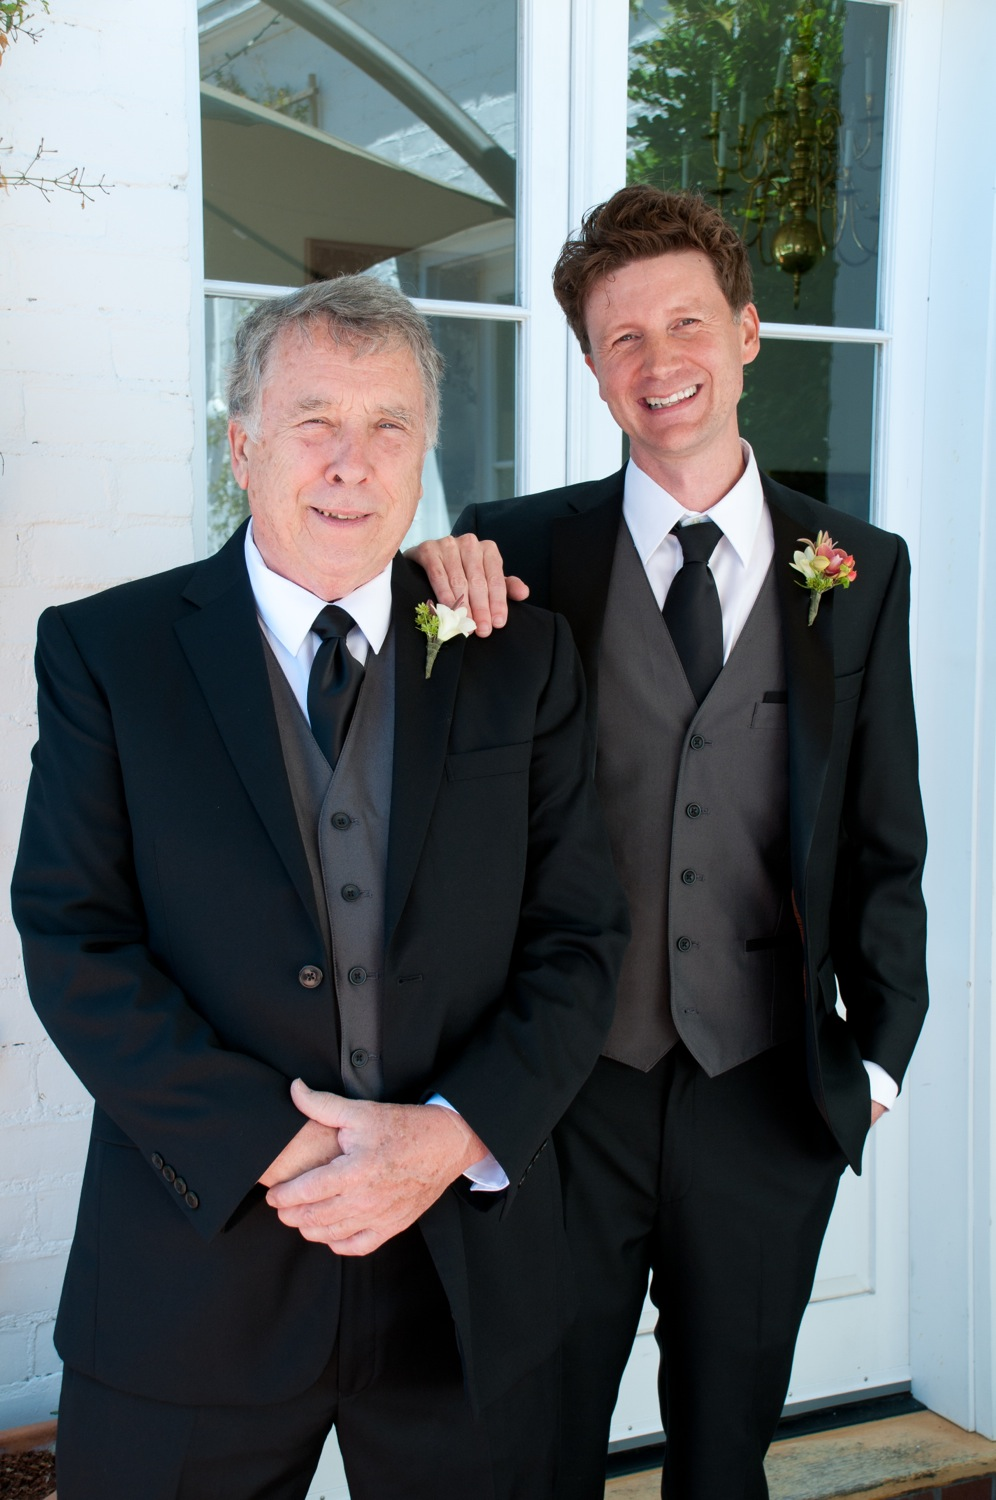 Jerram and the father of the bride, Glen.